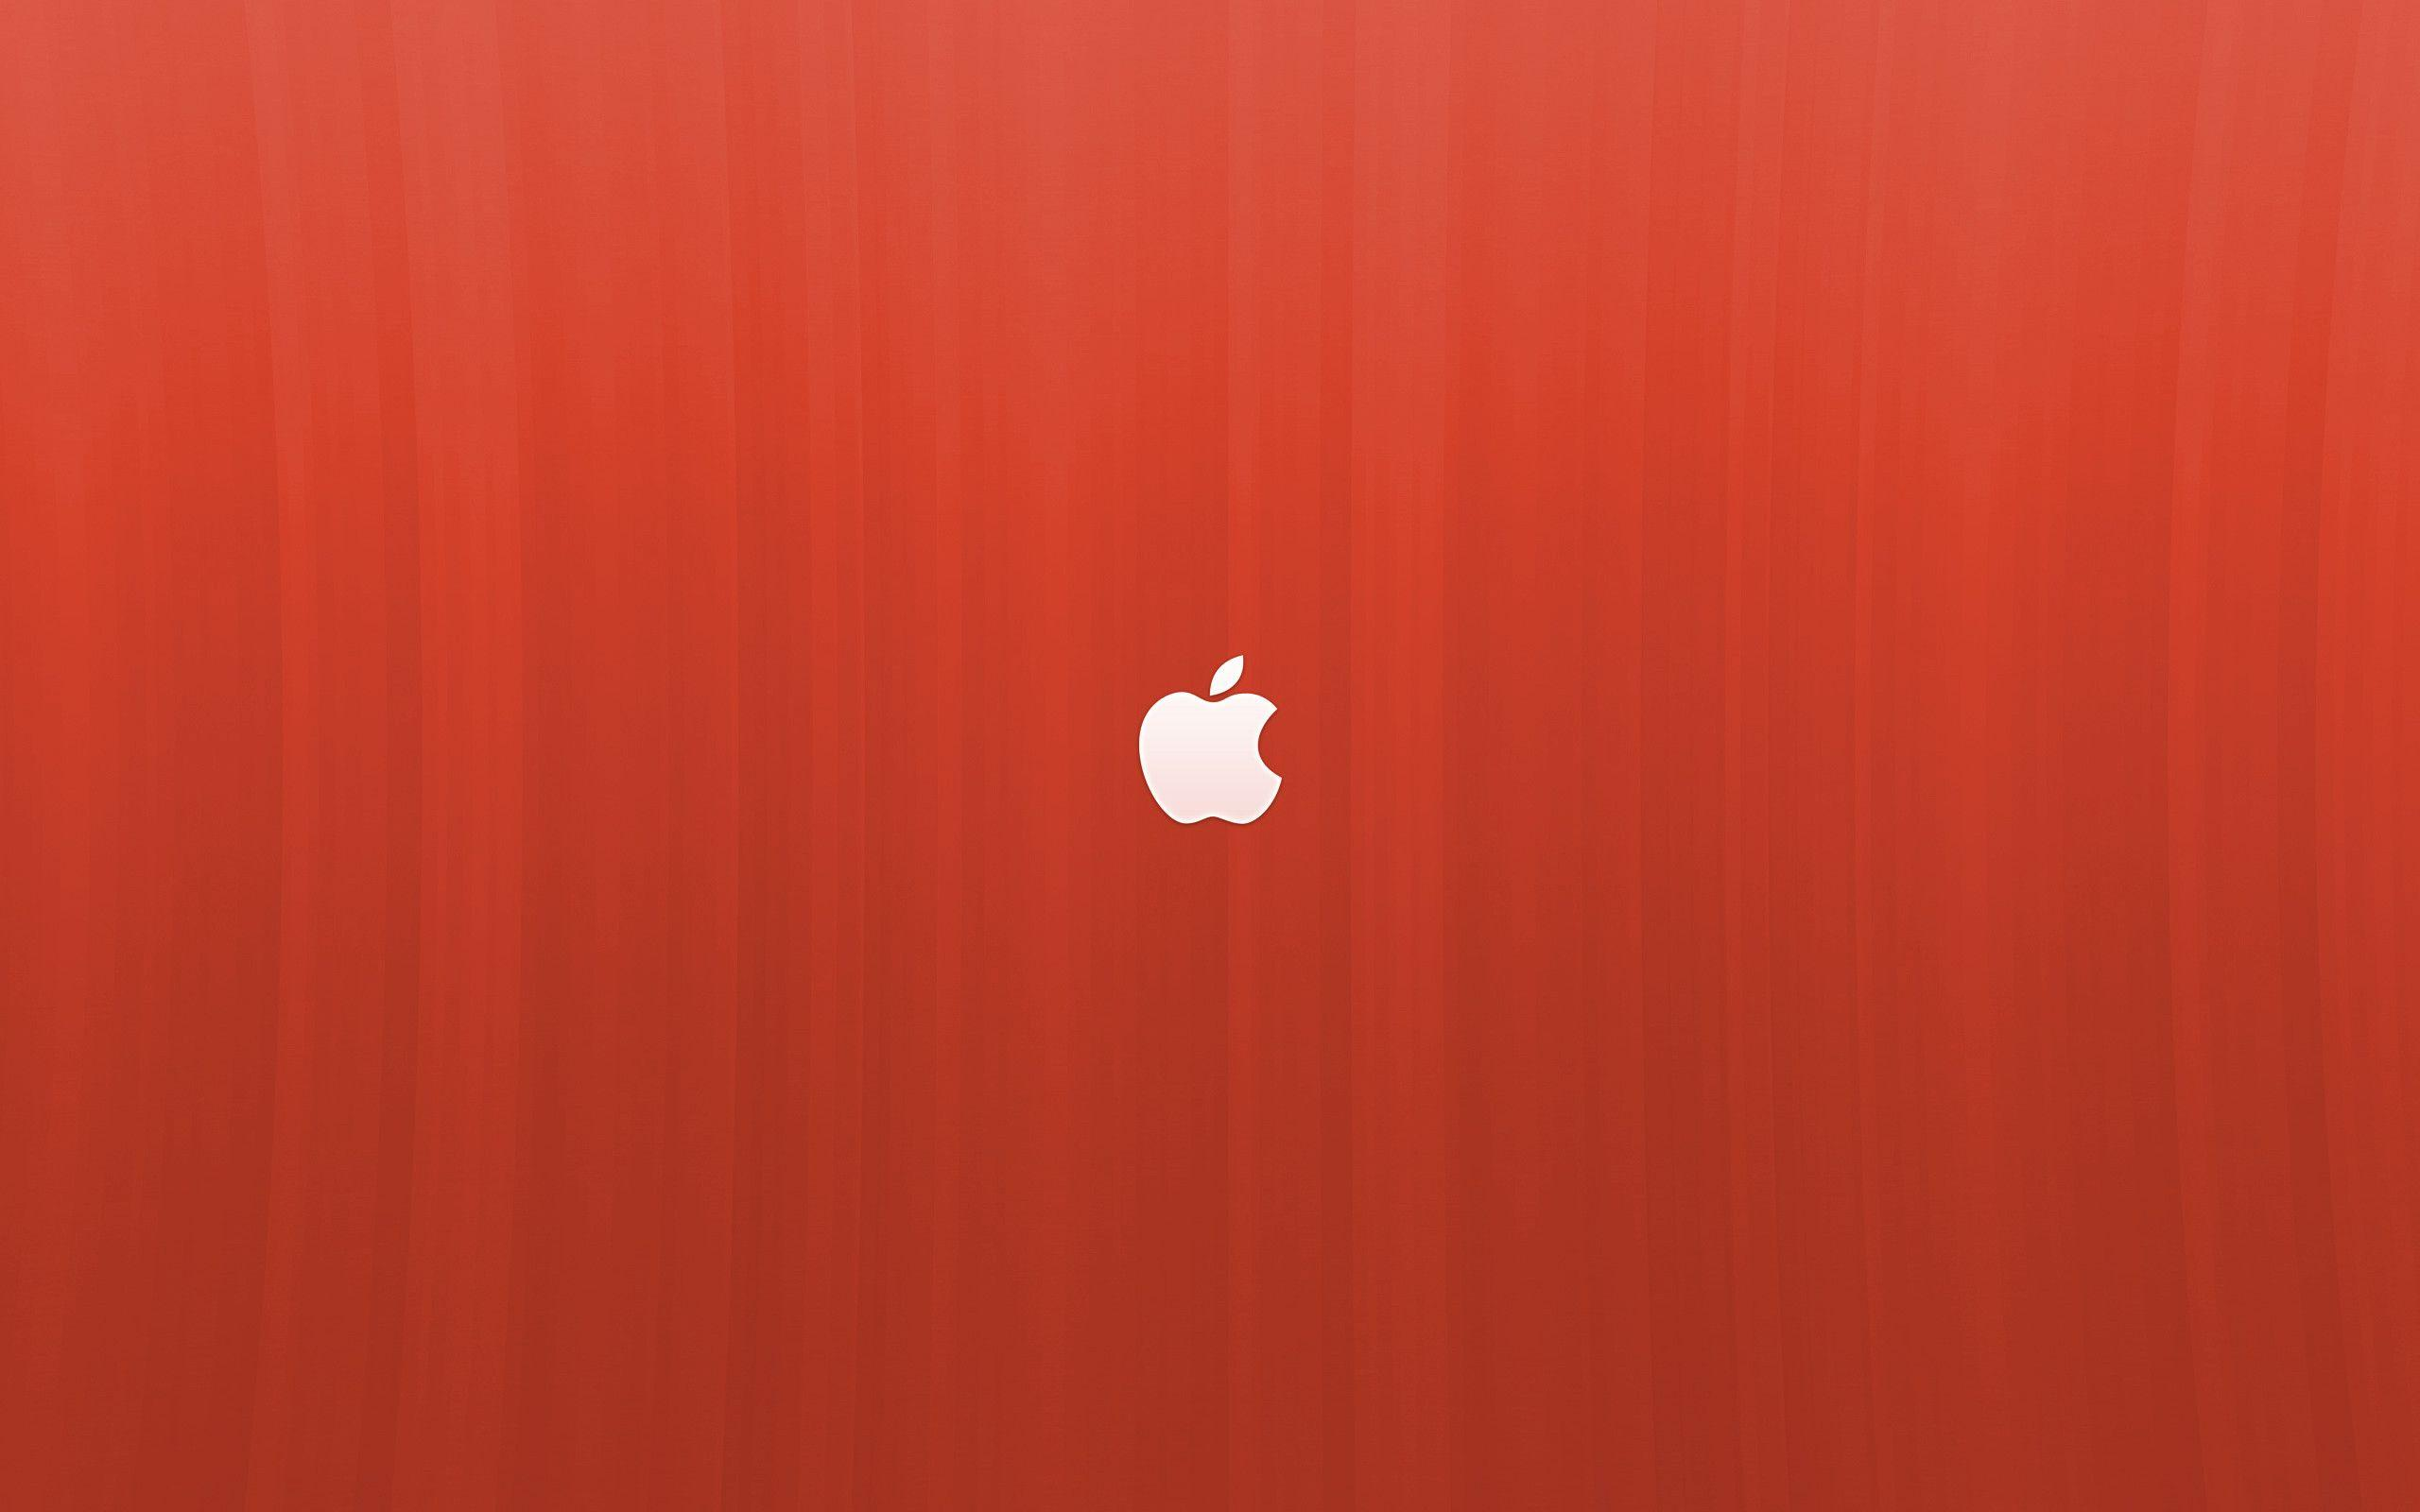 Red Apple Fruit Wallpapers - Wallpaper Cave |Red Apples Wallpaper